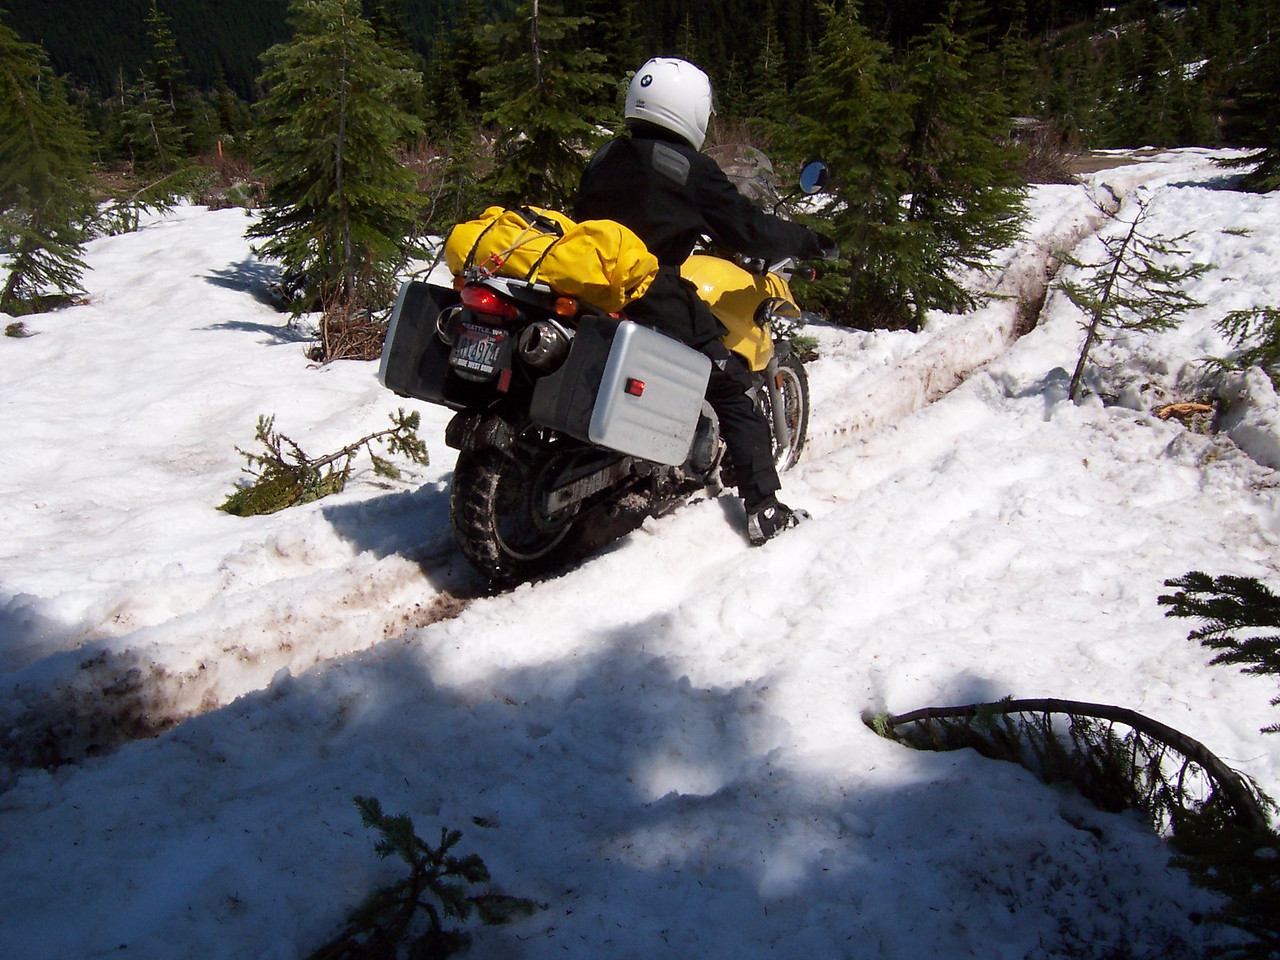 a loaded BMW F650 GS made it.